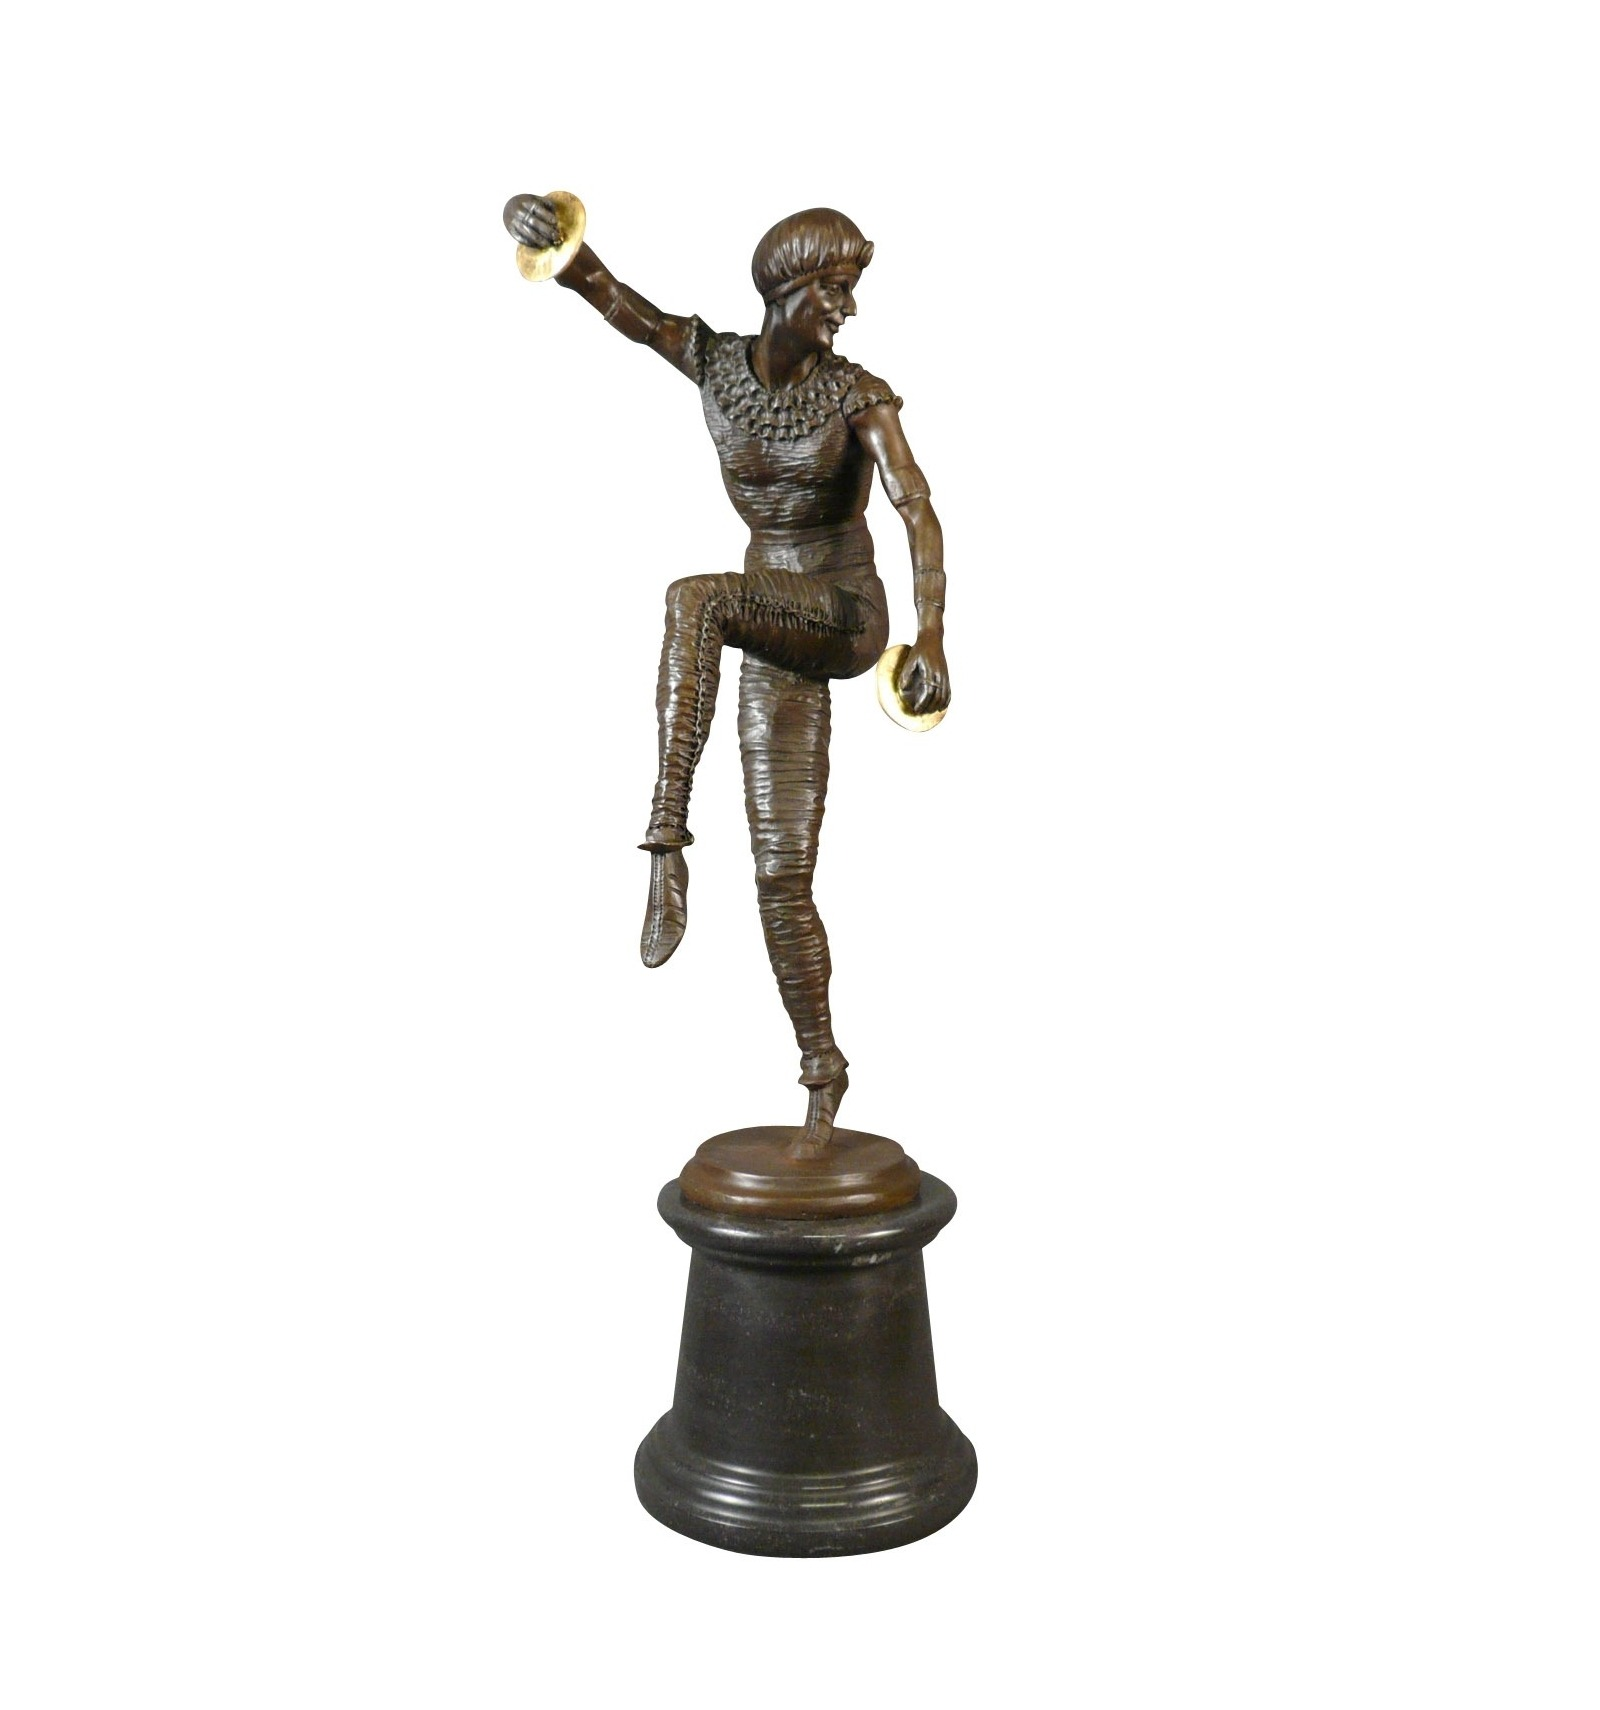 dancer bronze statue art deco furniture and lighting. Black Bedroom Furniture Sets. Home Design Ideas